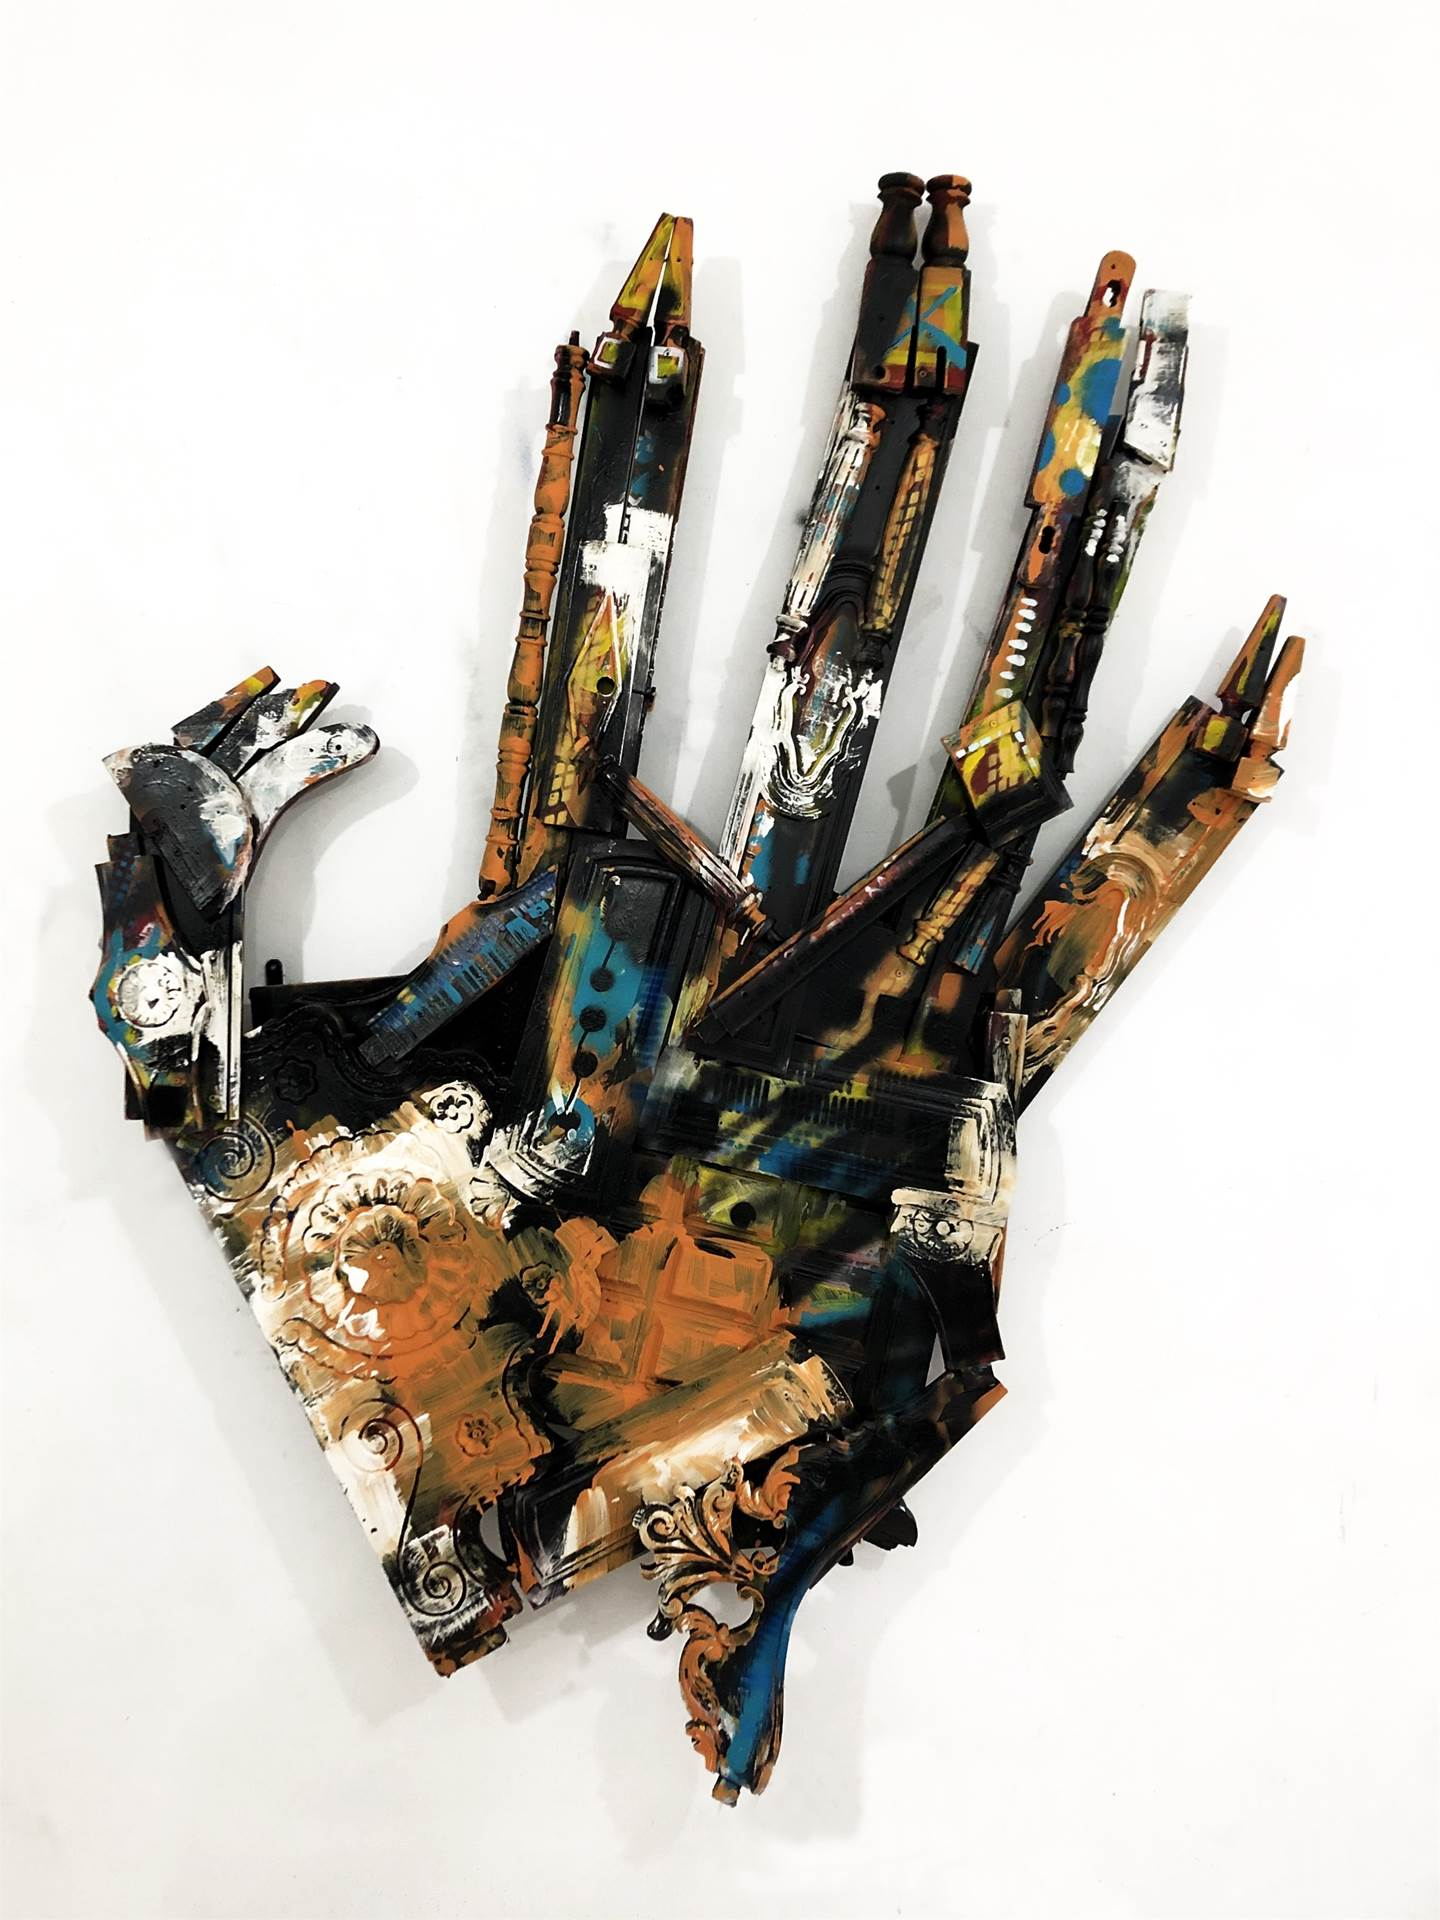 This is the Hand/end, original Body Wood Painting by Luís Canário Rocha